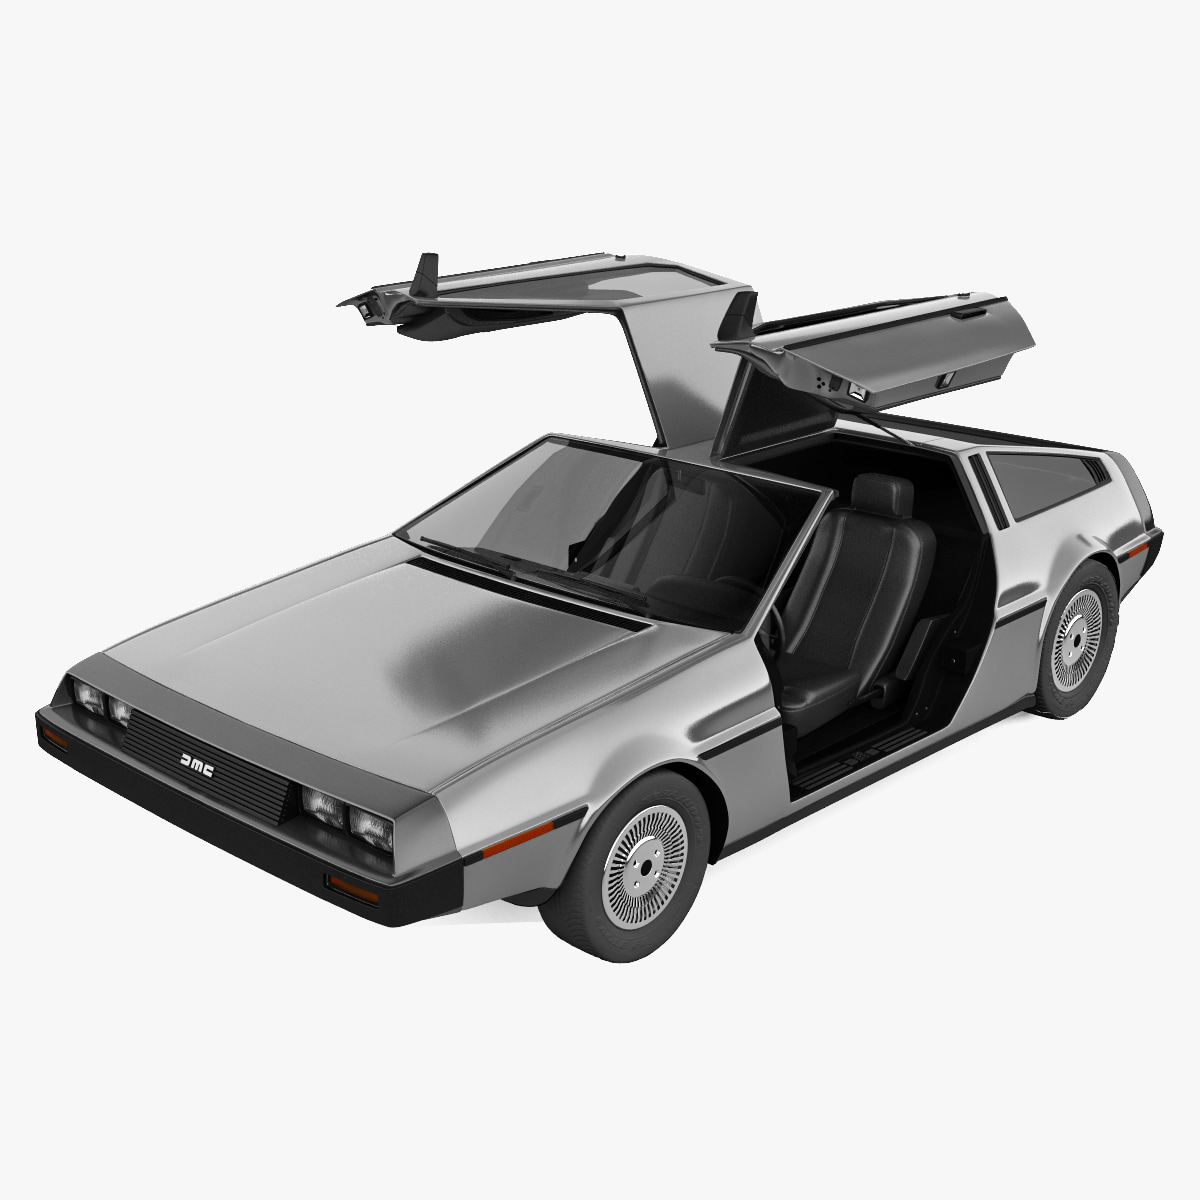 Delorean_DMC_12_00.jpg